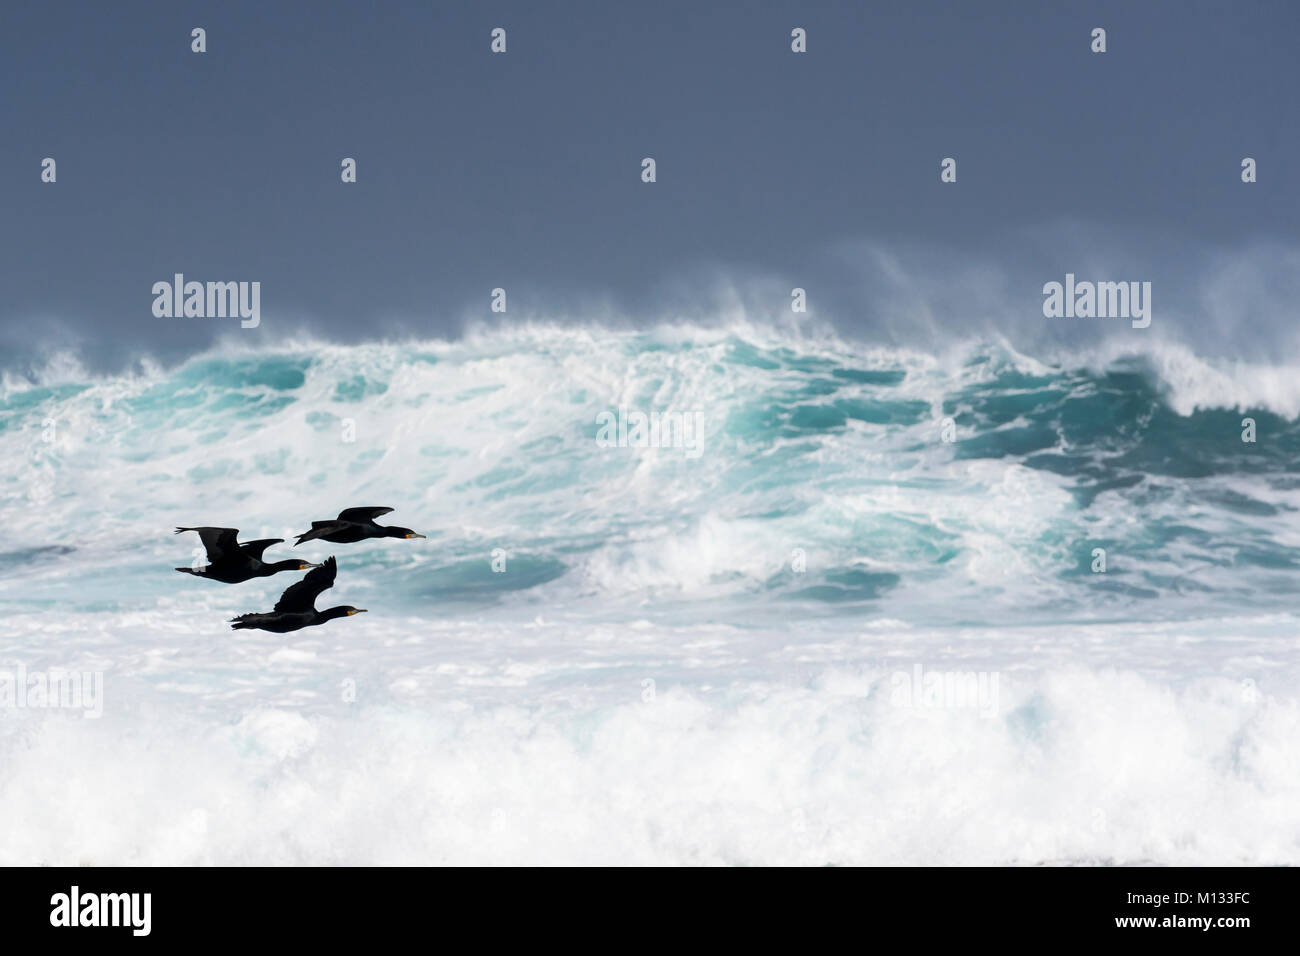 Three Cape Cormorant (Phalacrocorax capensis) flying over rough sea, Cape of good hope, Cape penninsula, South Africa - Stock Image